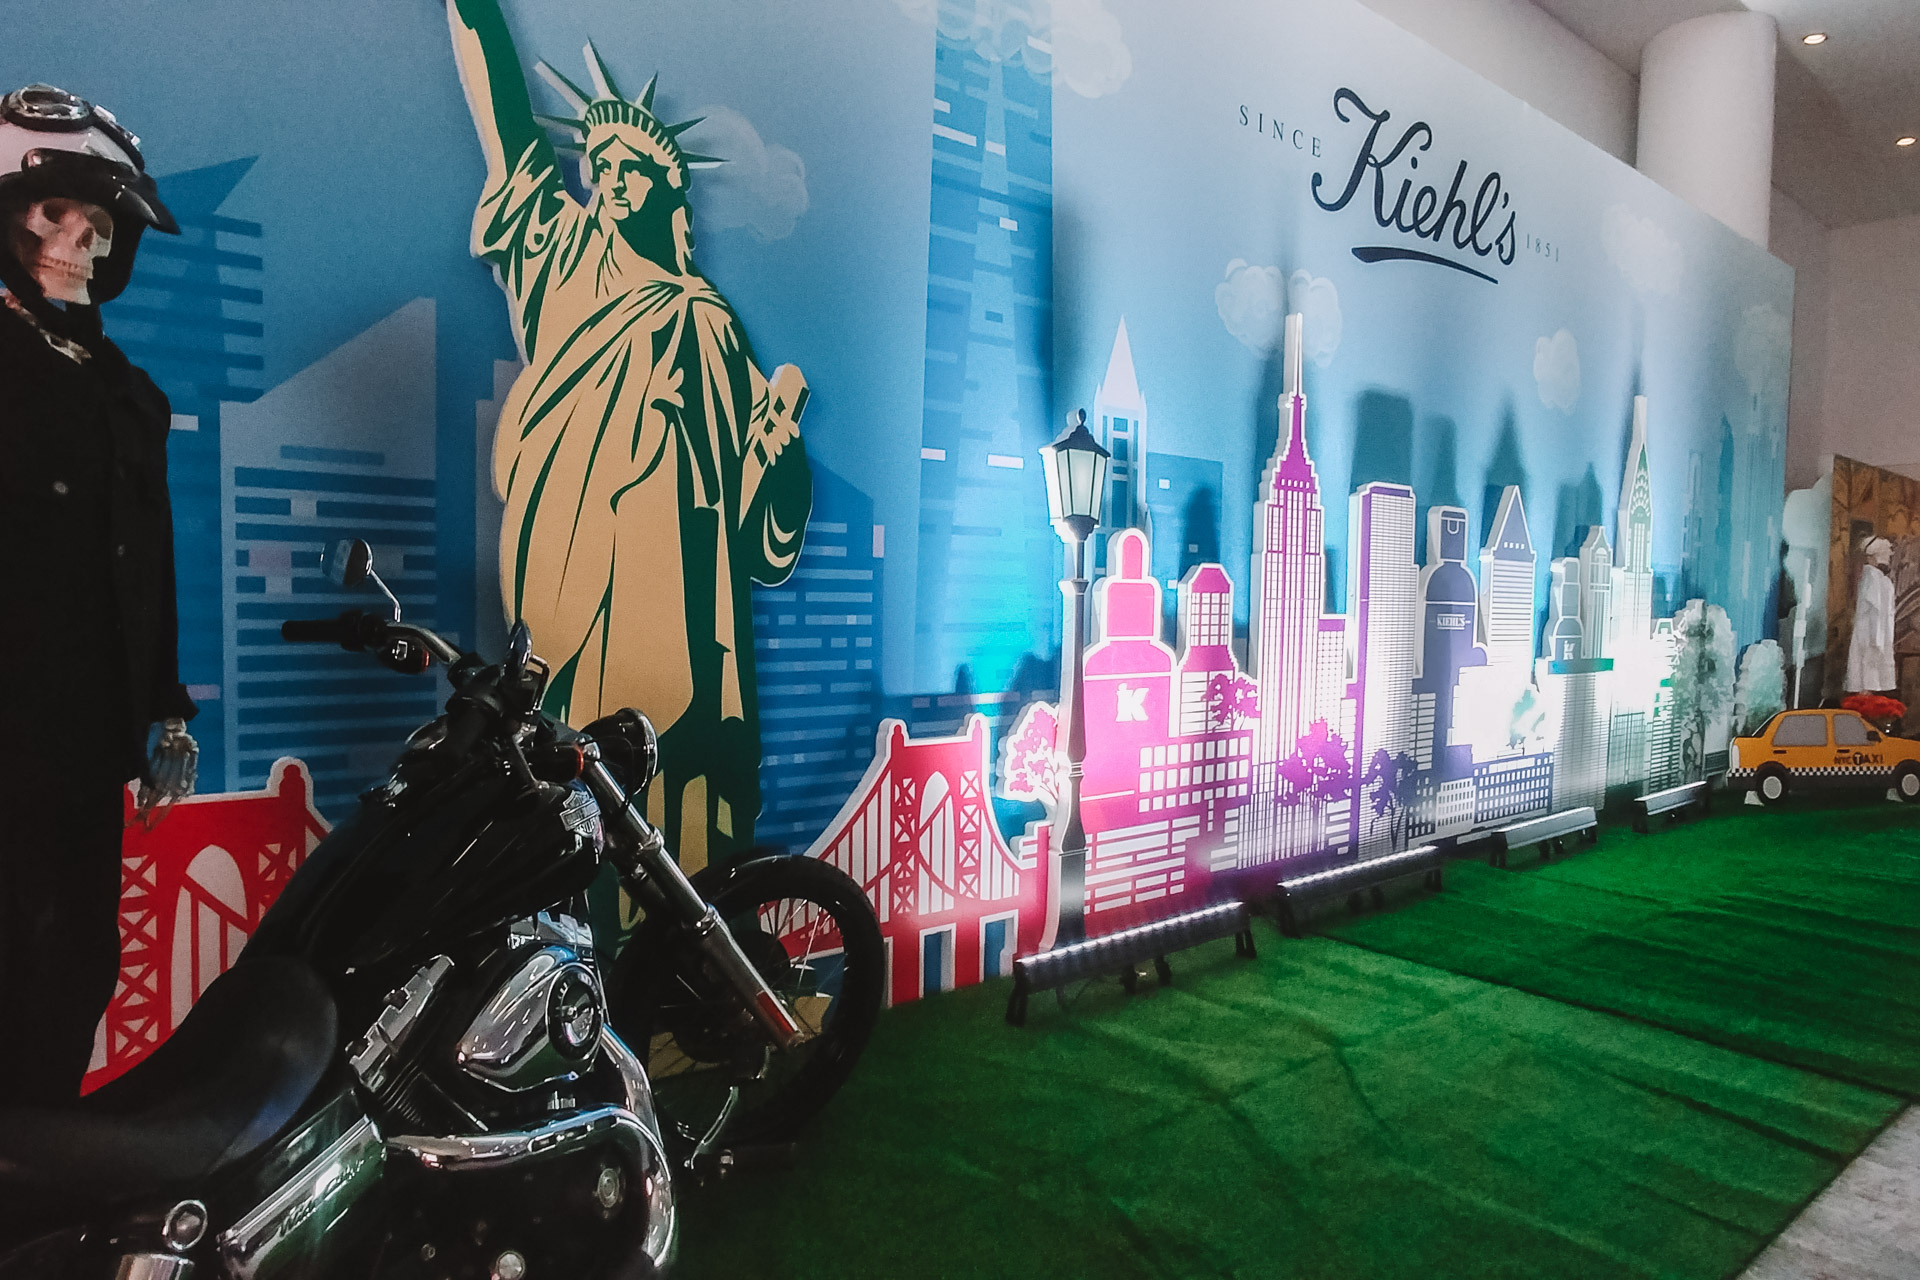 Loreal Kiehls set design photo wall brand presence